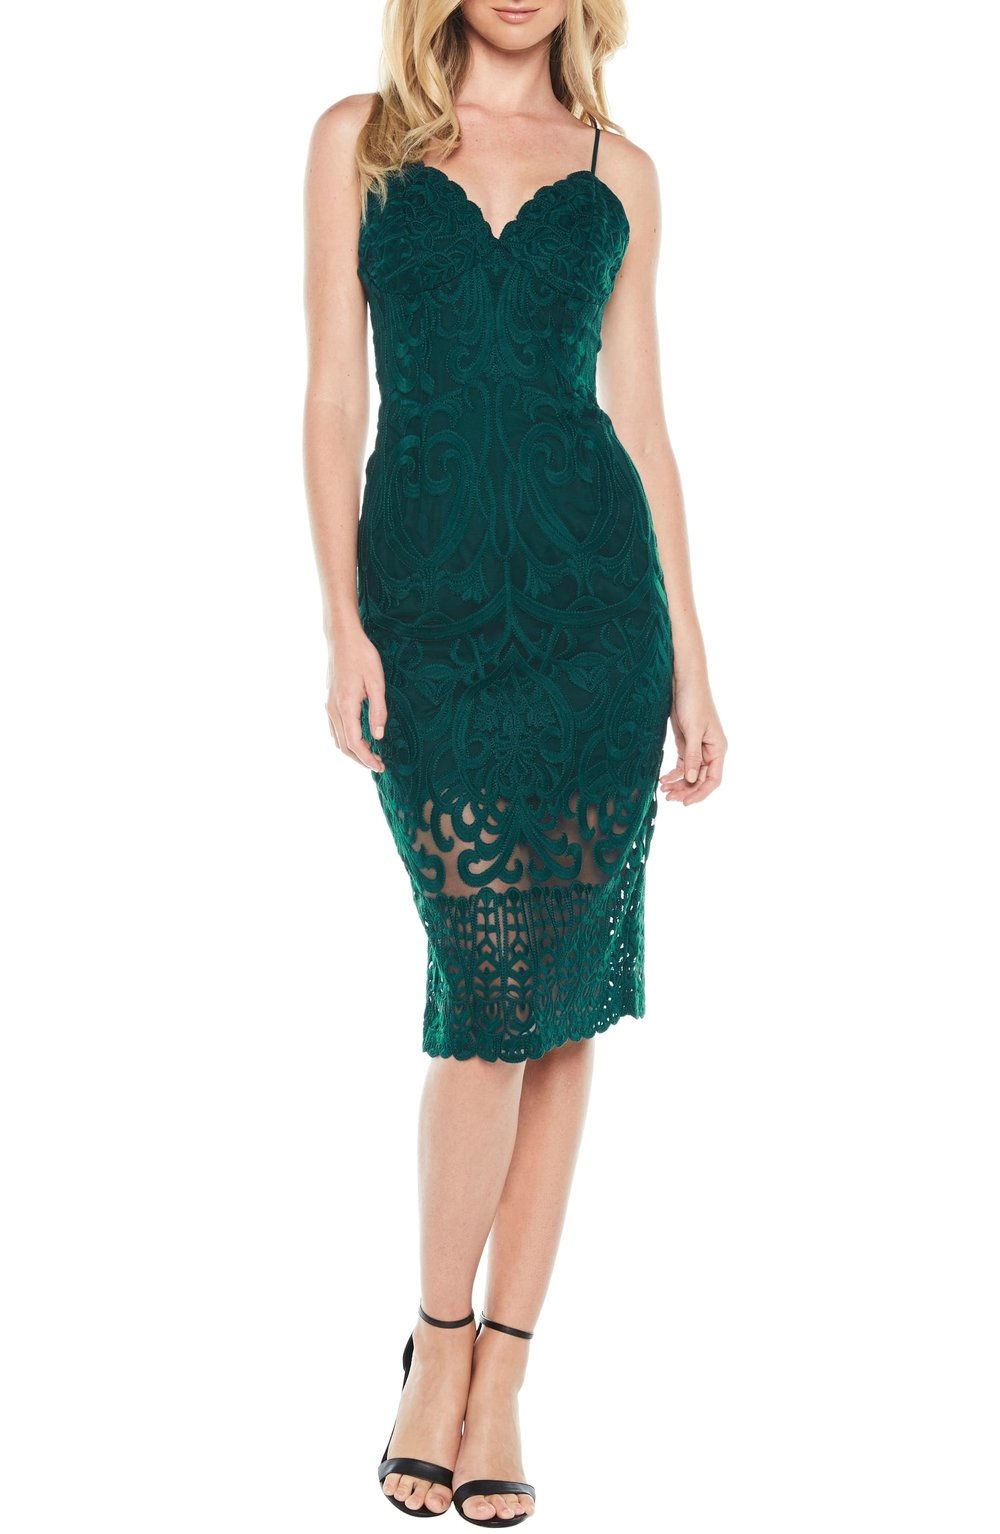 Bardot Gia Lace Pencil Dress. Available in two colors. Nordstrom. $159.